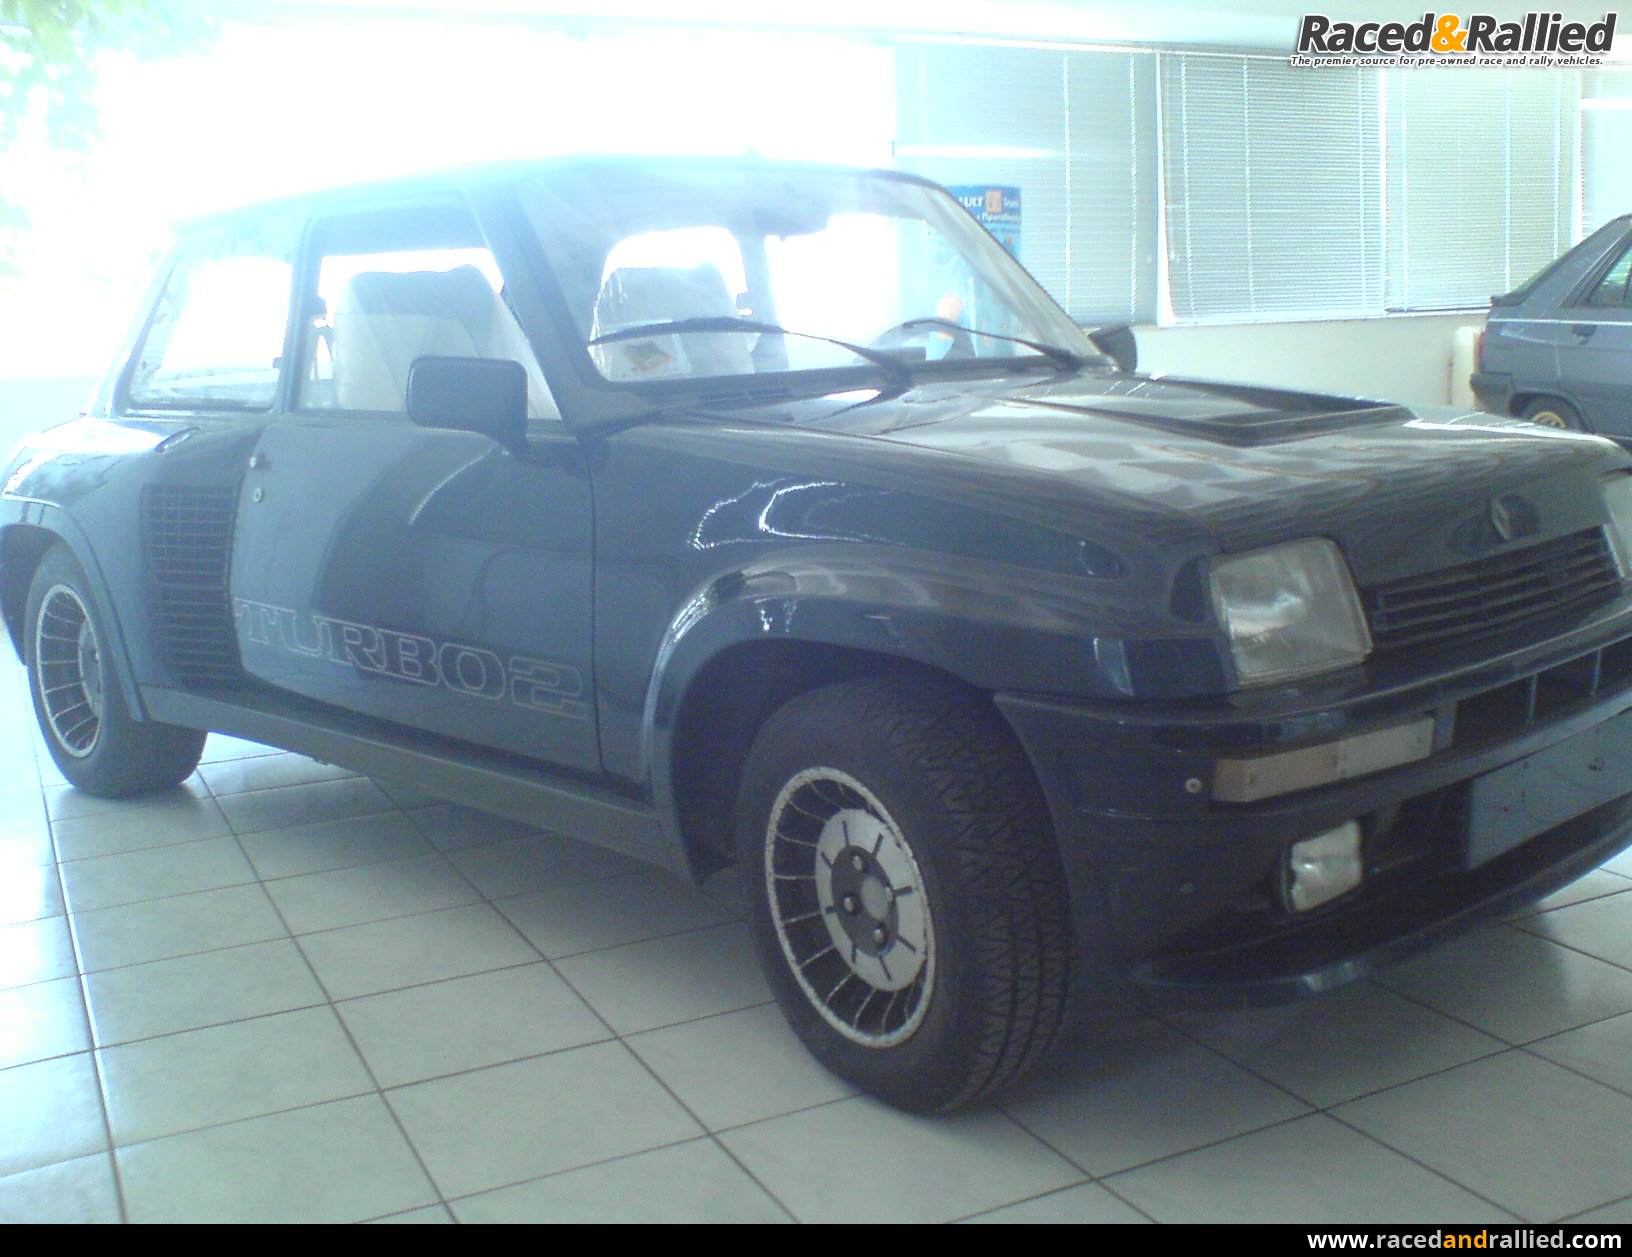 renault 5 turbo 2 race cars for sale at raced rallied rally cars for sale race cars for sale. Black Bedroom Furniture Sets. Home Design Ideas